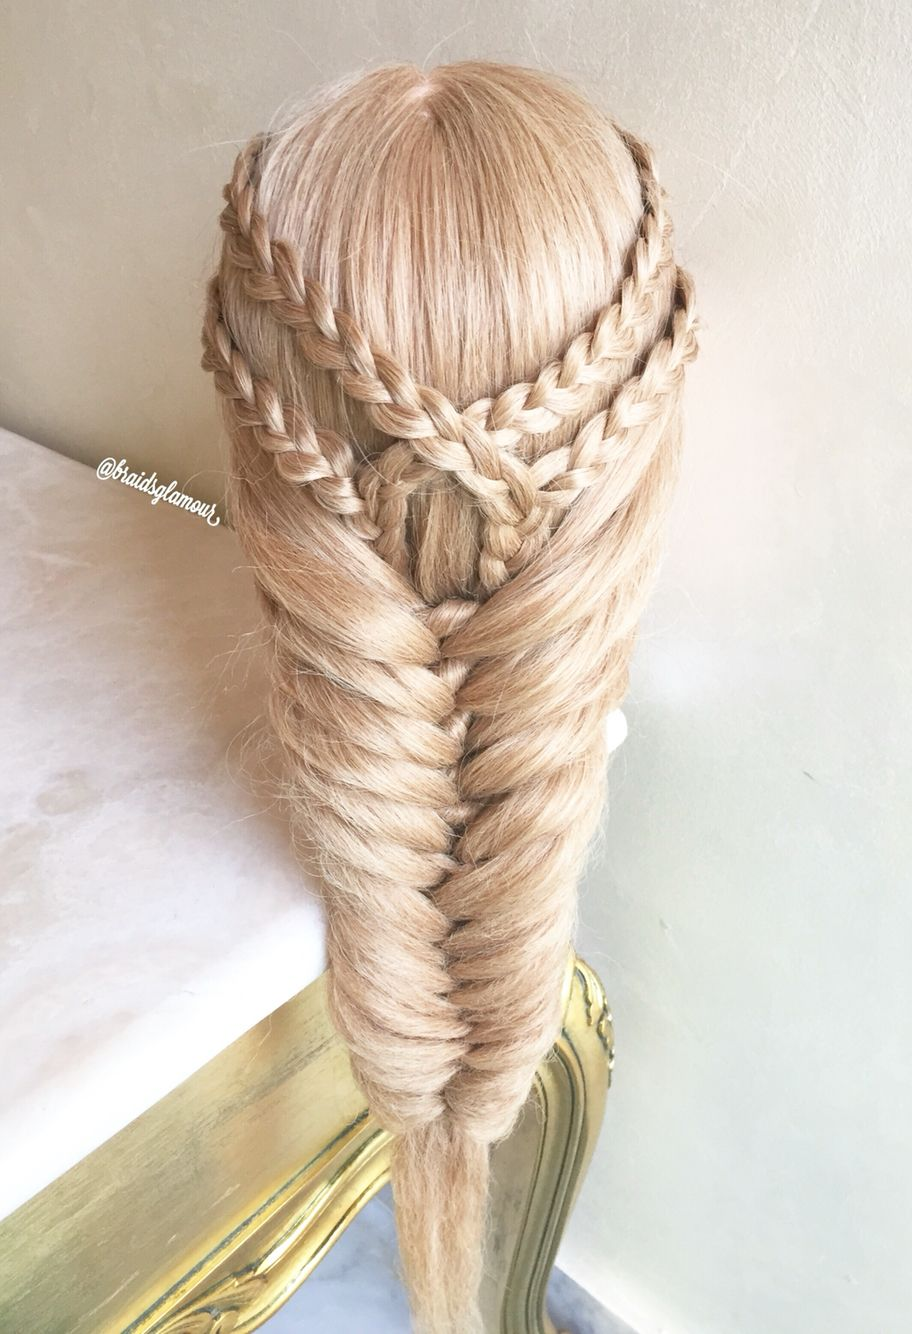 Fishtail Braid Hairstyles Extraordinary Double Braid Tieback Into Knotted Fishtail Braid  Hairstyles